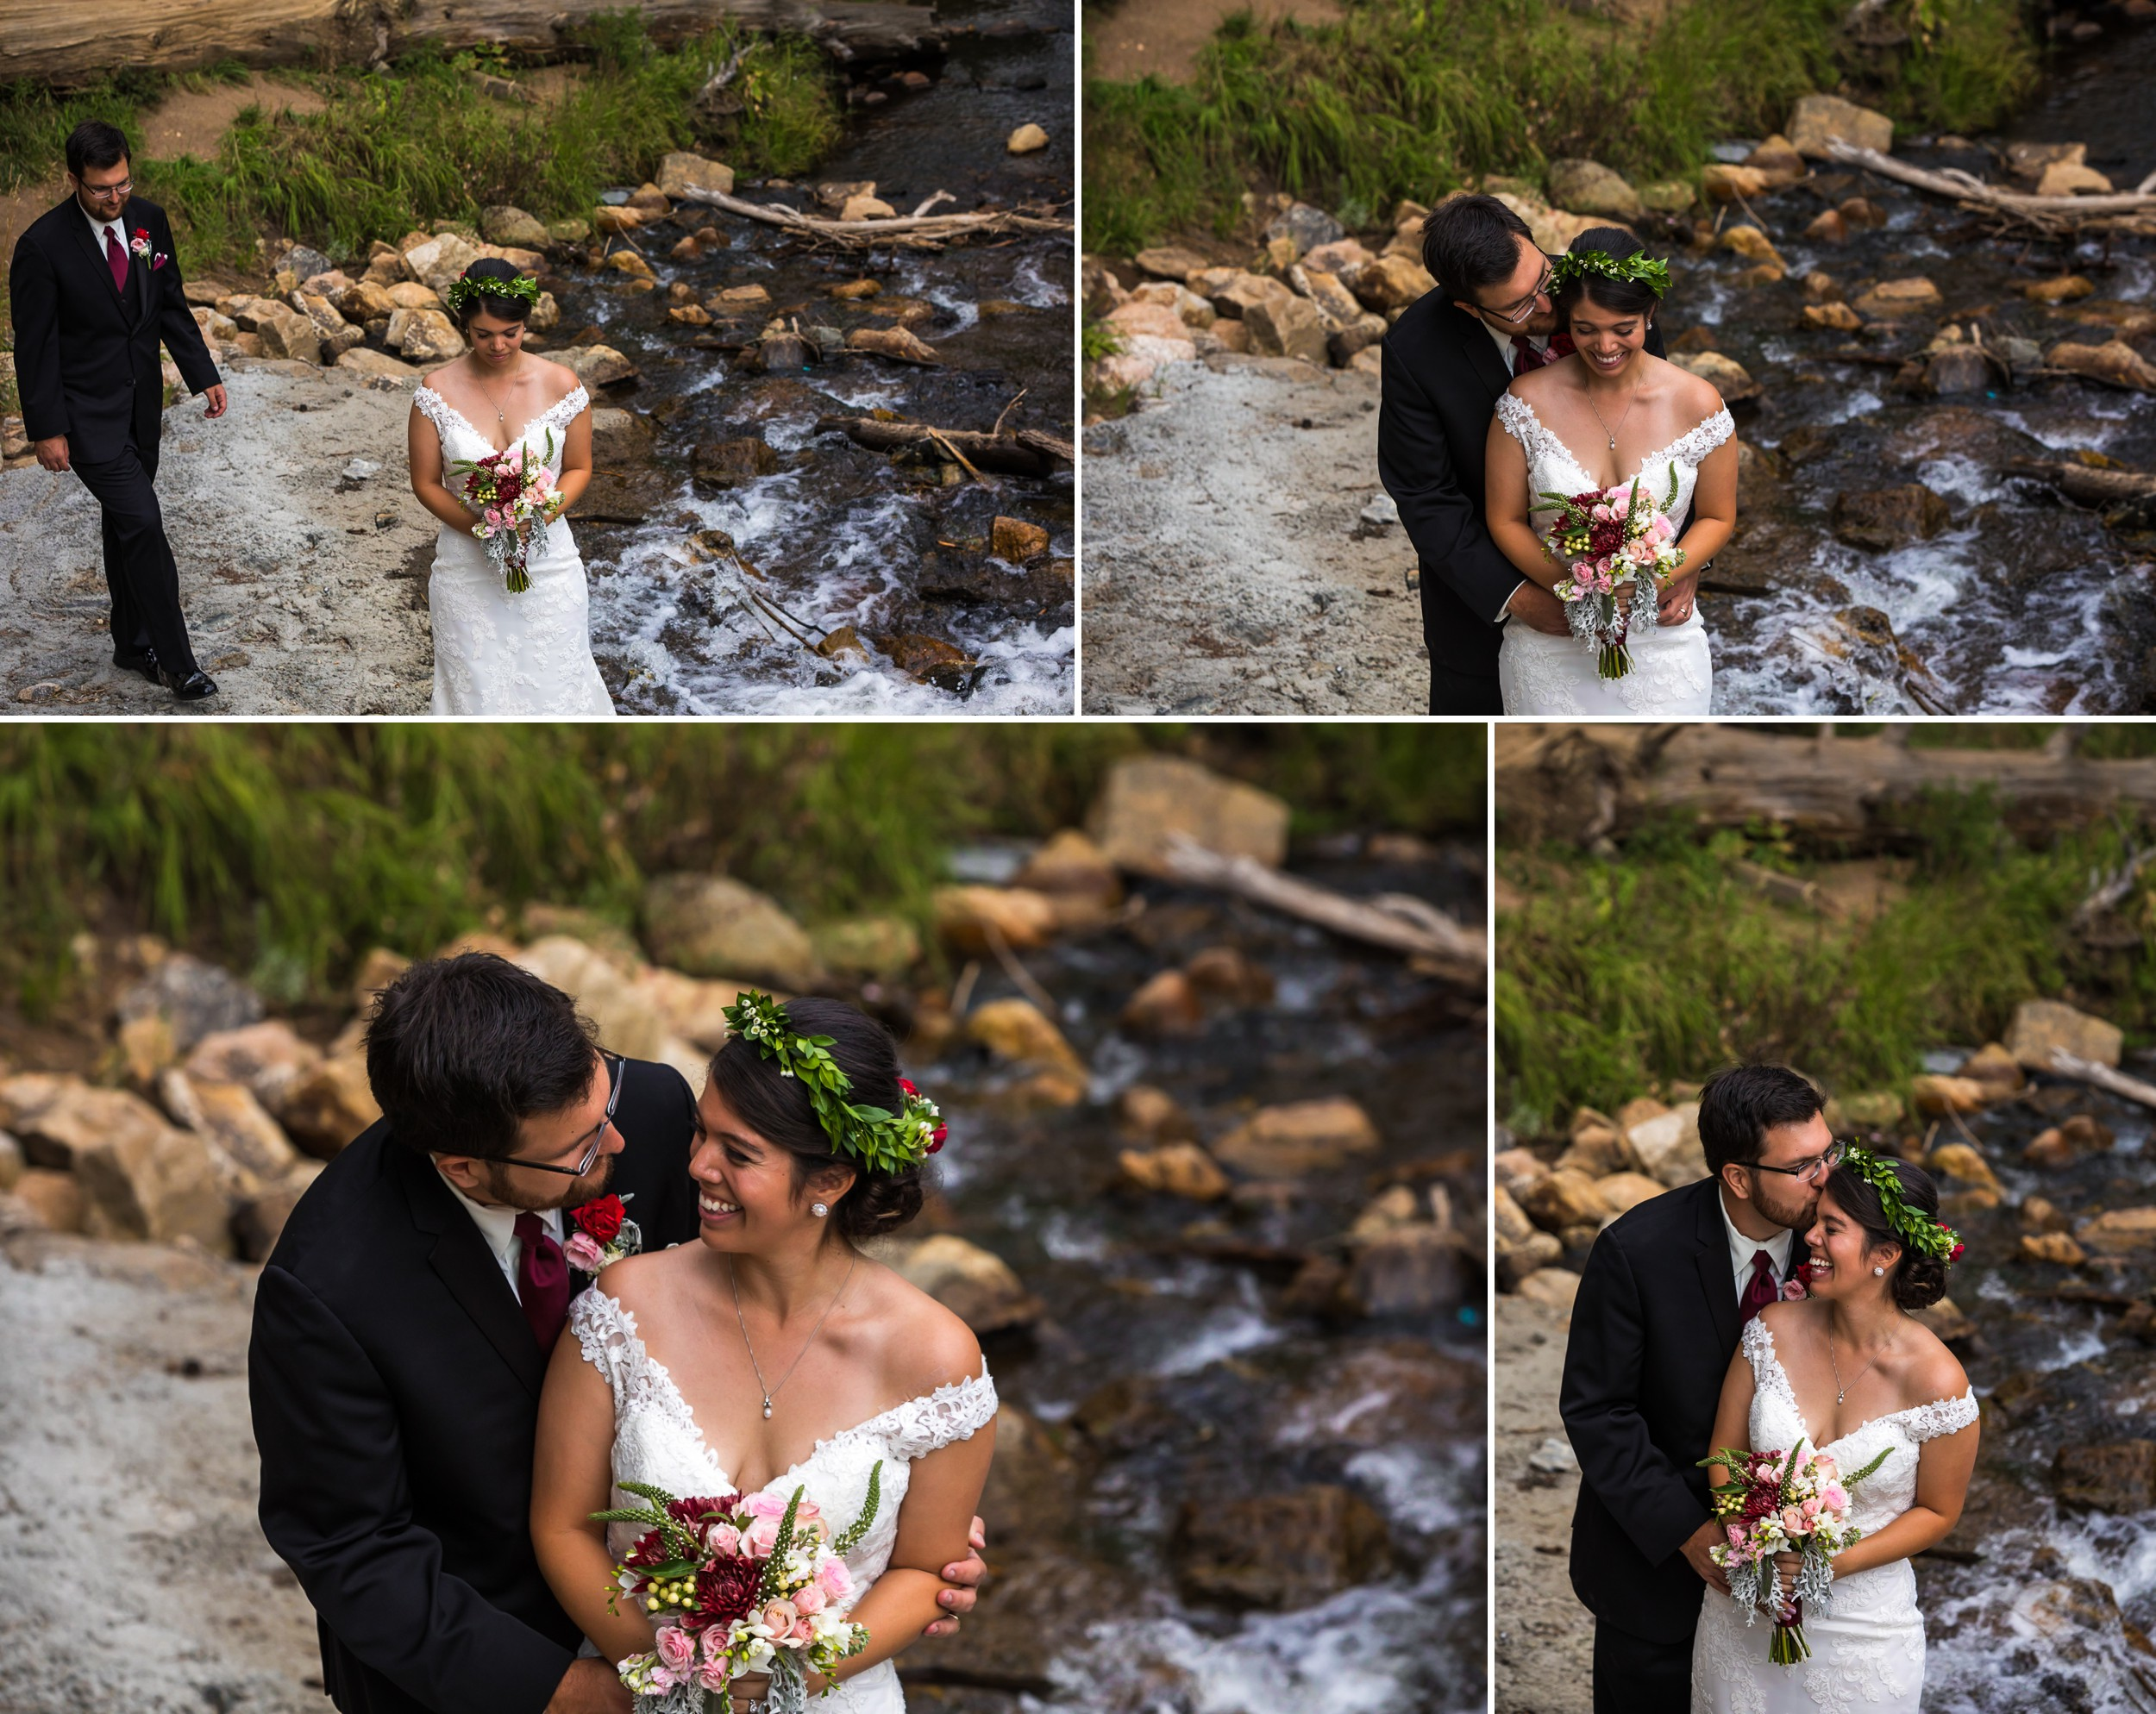 YMCA_of_the_Rockies_Estes_Park_Elopement_Emanuel_Kristopher_Lindsay_Photography 10.jpg